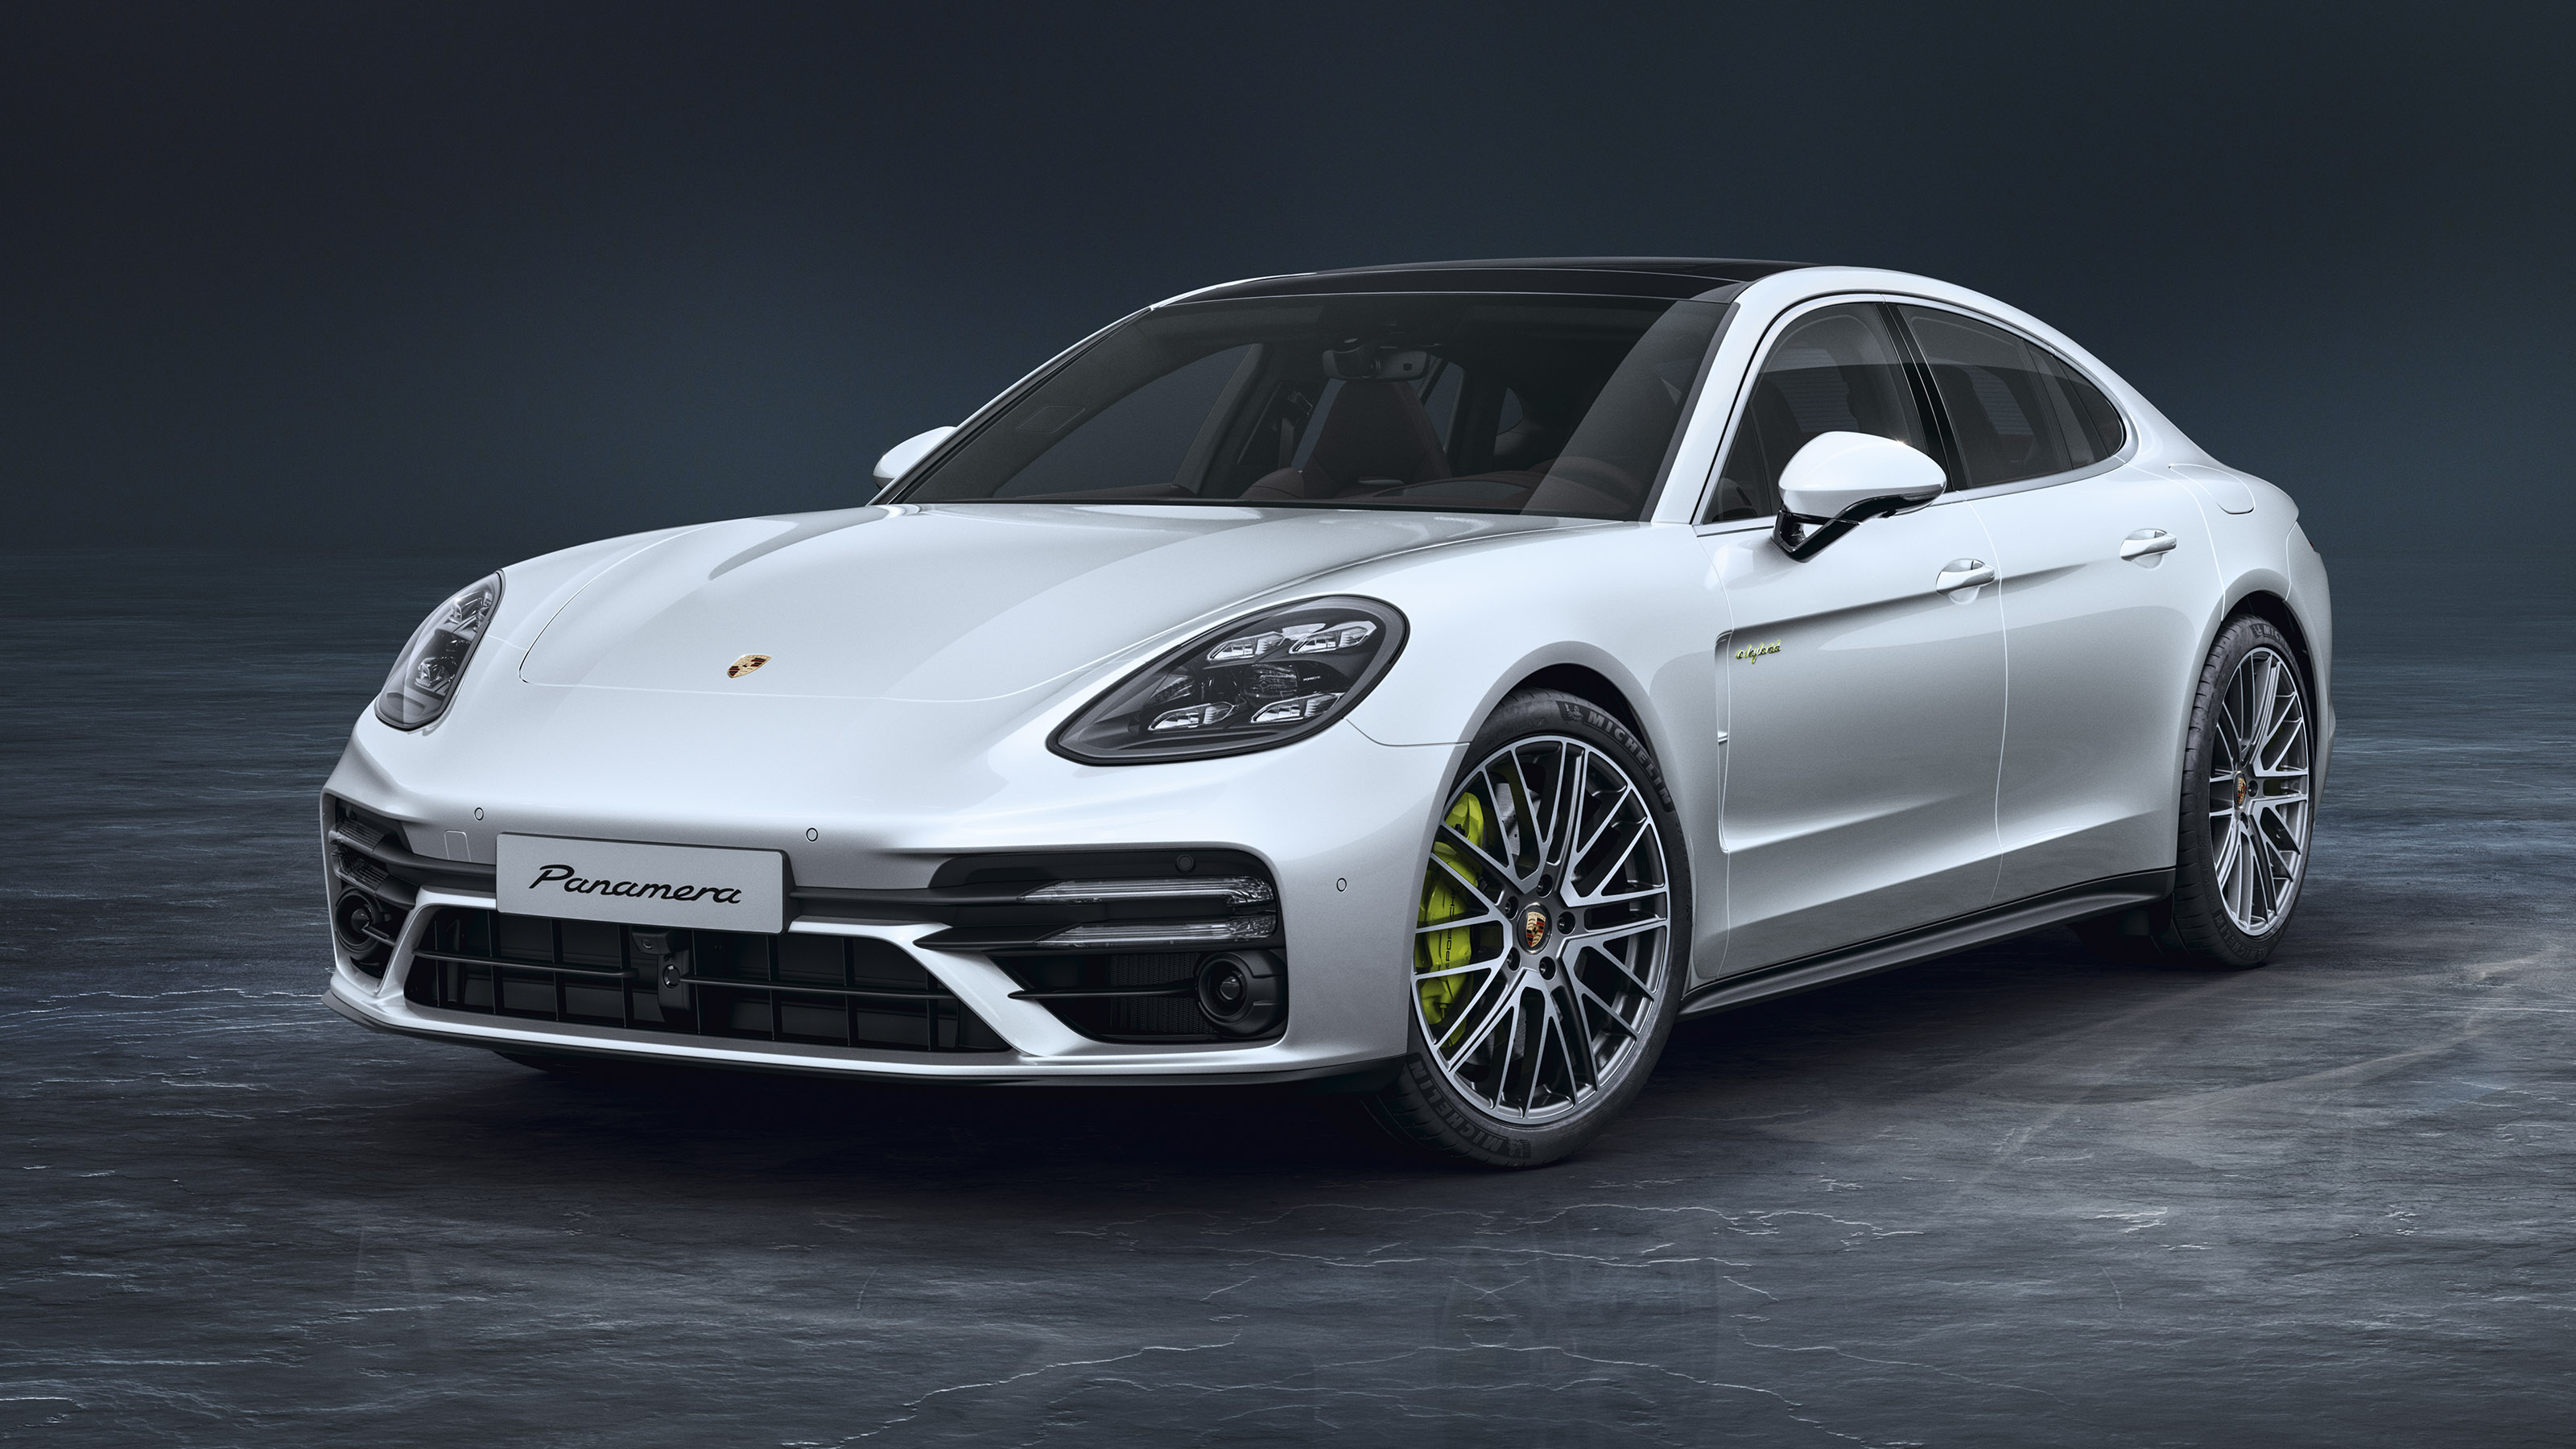 porsche panamera turbo hybrid facelift sprints carbuyer brings version boxster mk2 buying 2005 guide